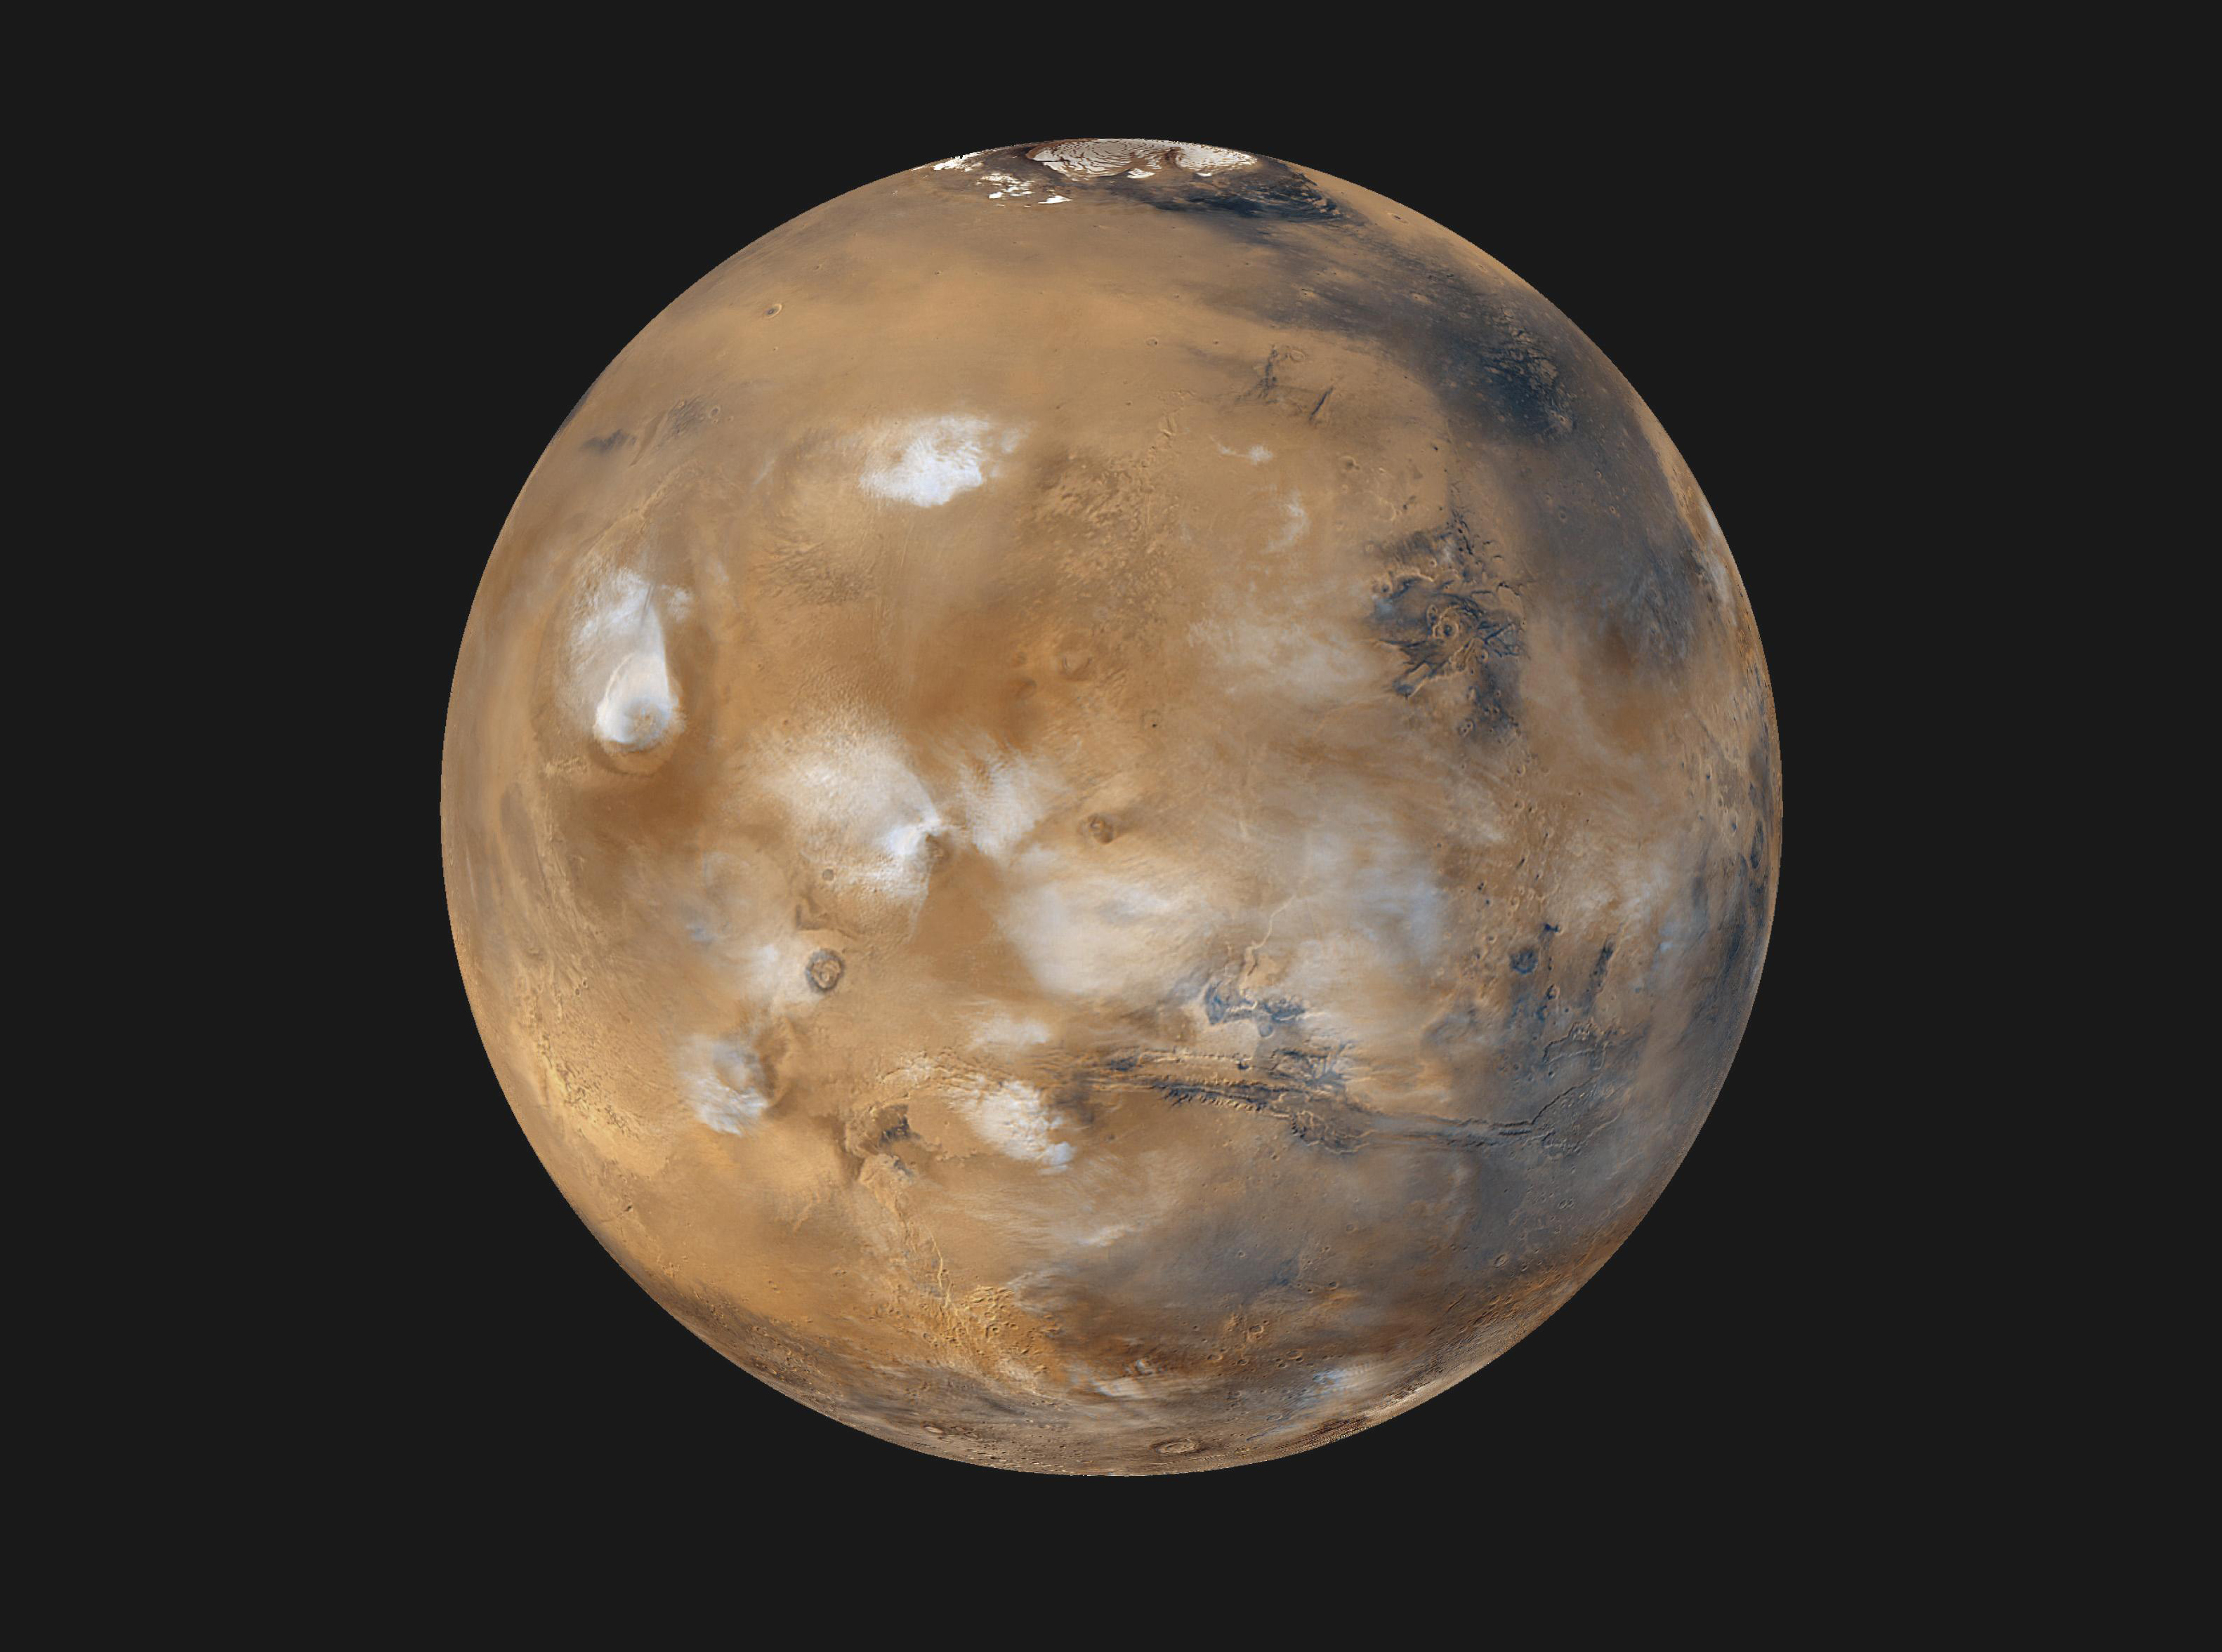 NASA wants suggestions for where to land humans on Mars